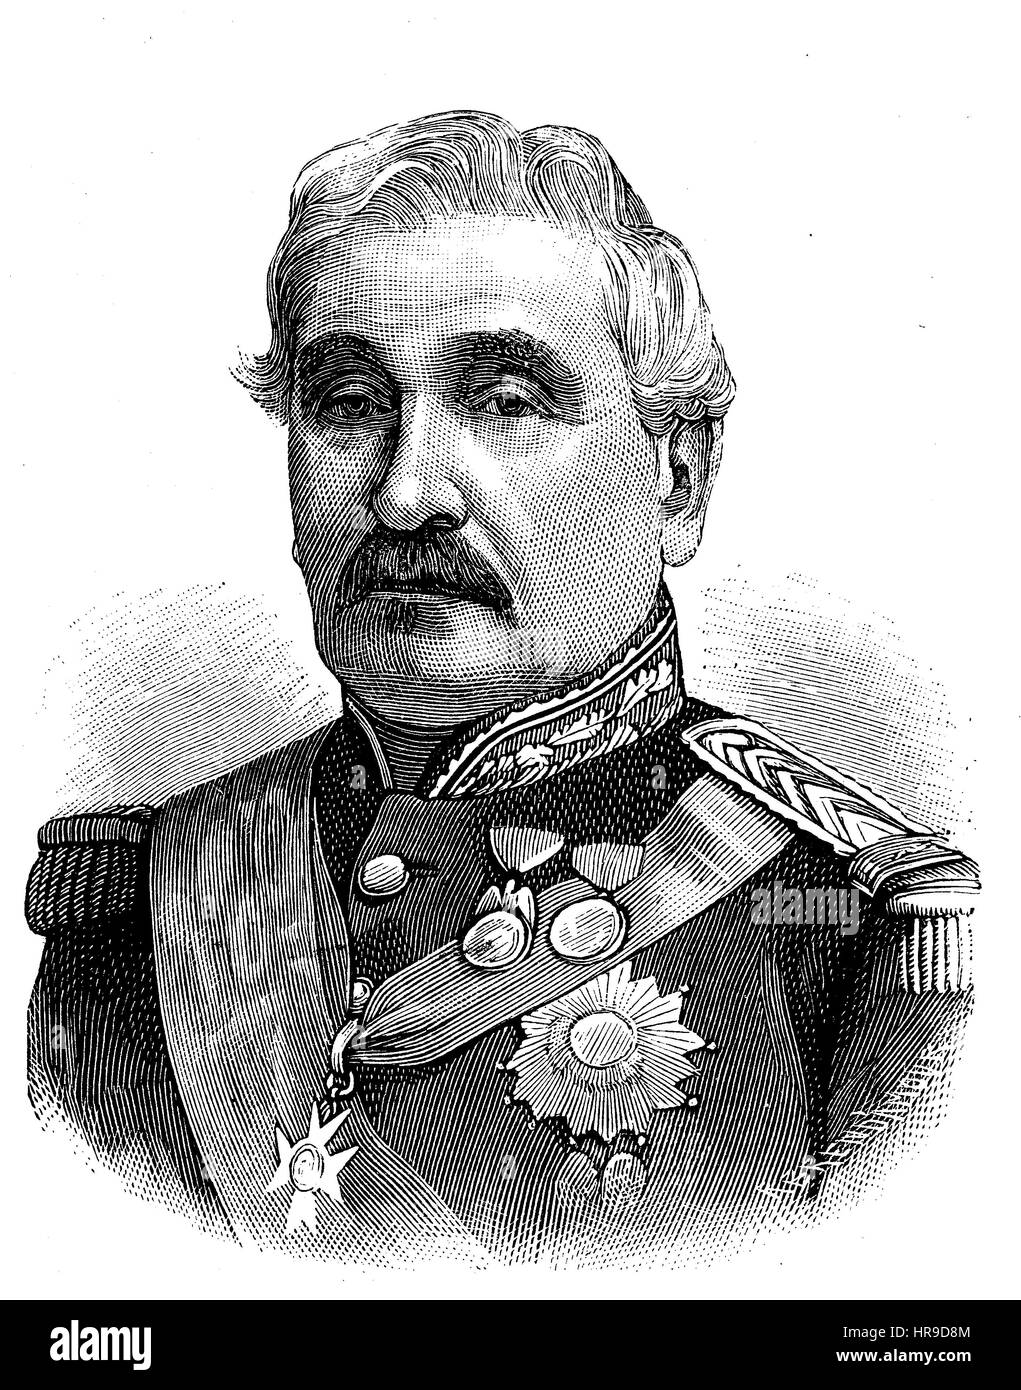 Charles Guillaume Marie Appollinaire Antoine Cousin Montauban, comte de Palikao, 1796 - 1878, was a French general - Stock Image